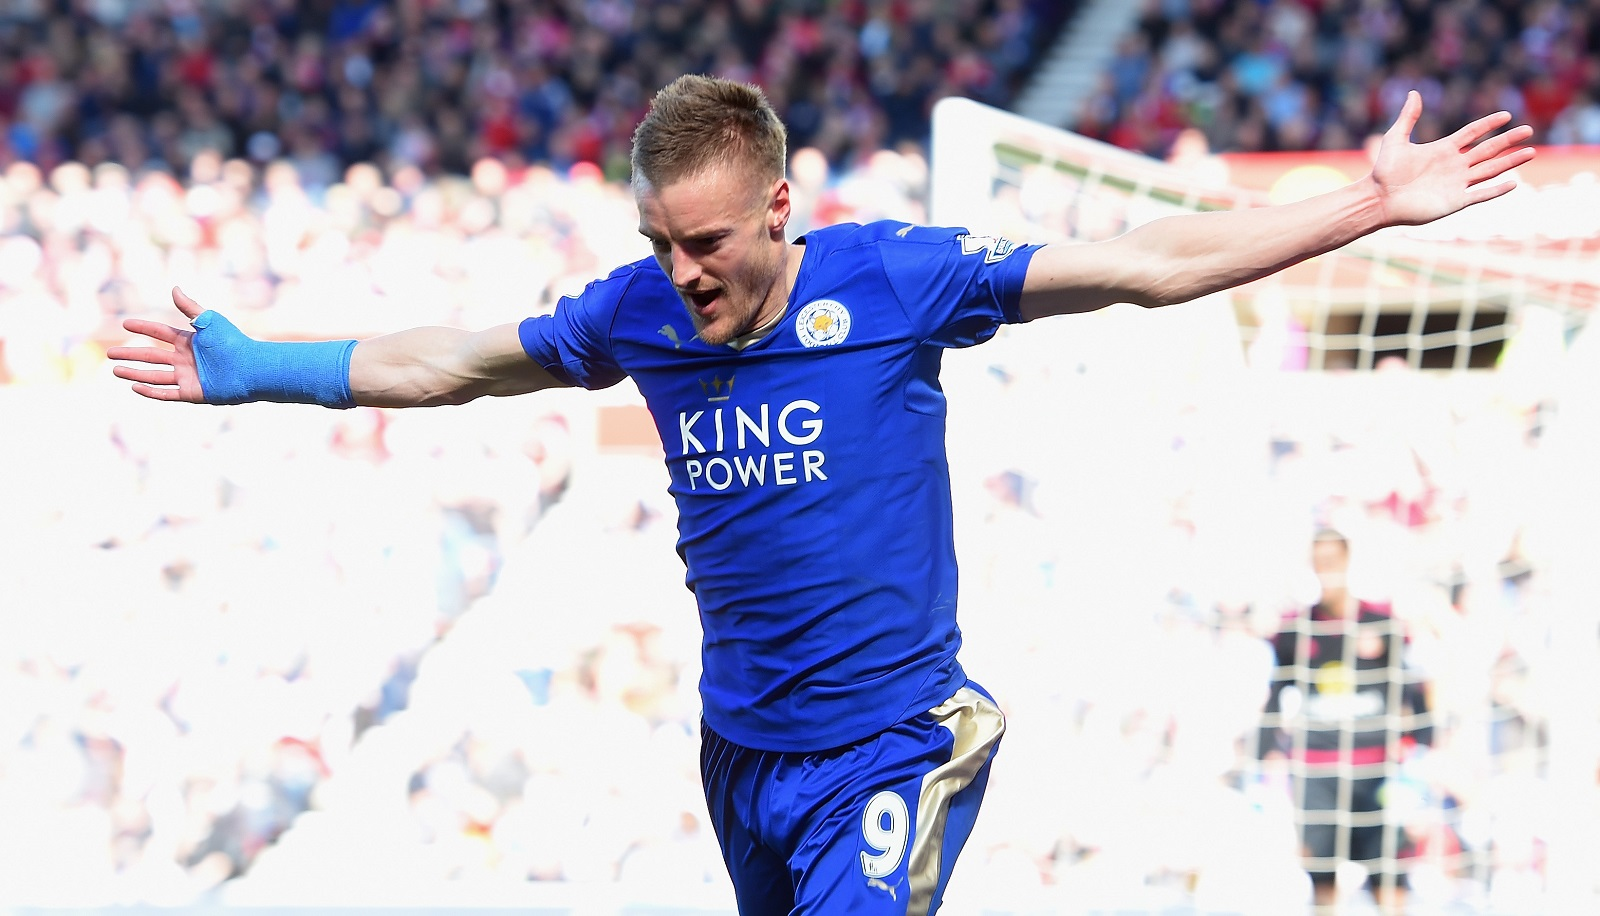 Jamie Vardy, who set the EPL record by scoring in 11 straight games, will be suspended for the match against Manchester United. (Getty Images)